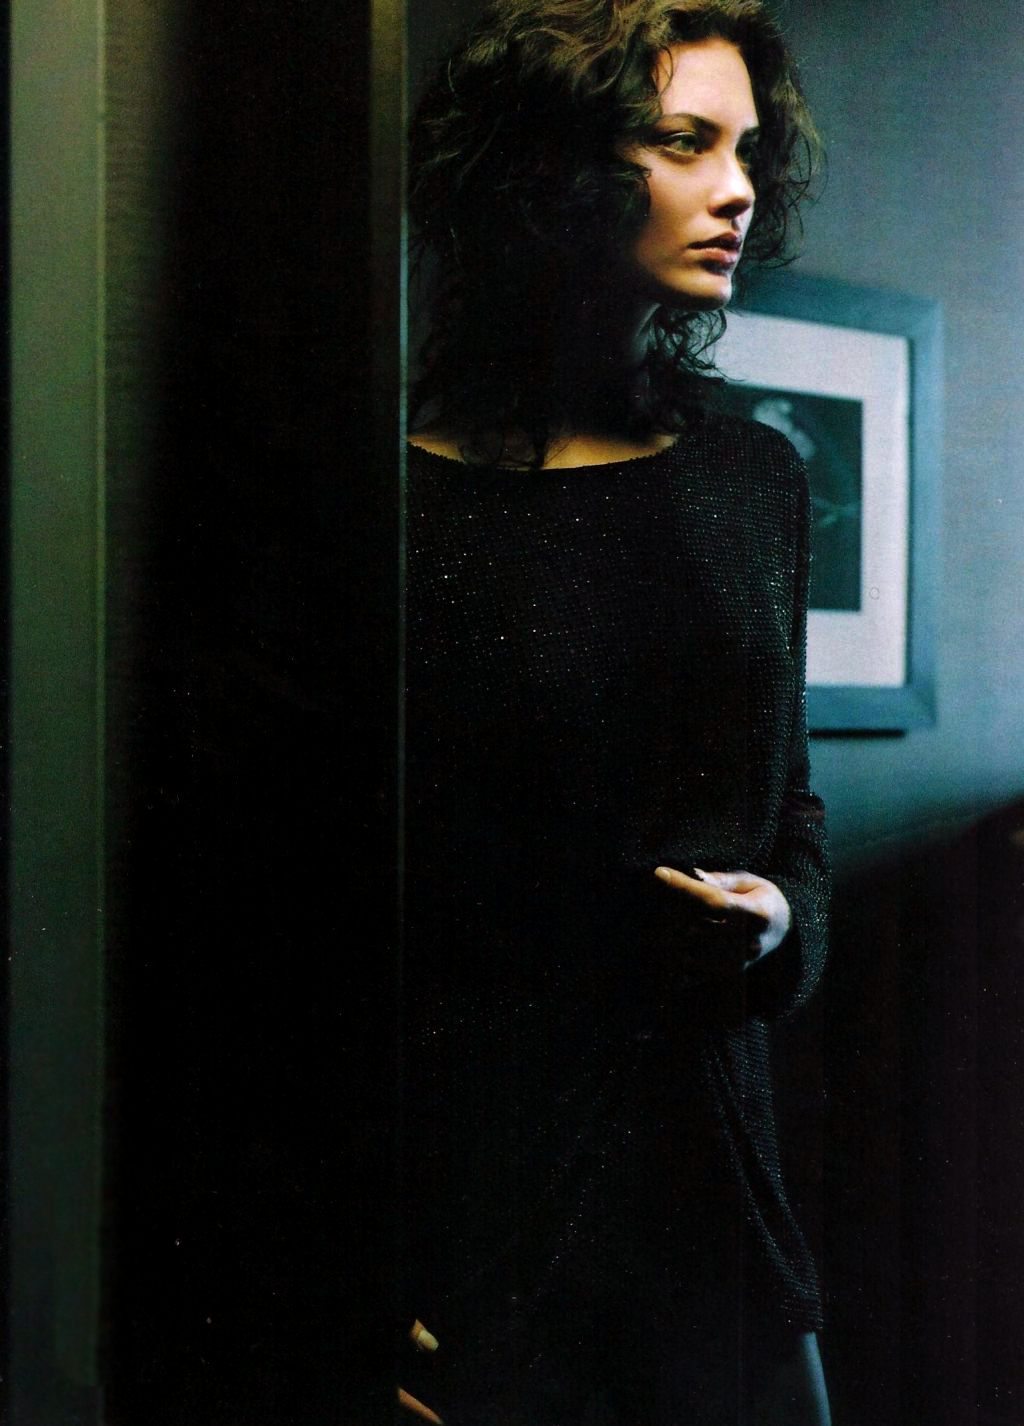 Shalom Harlow in Allure June 1997 (photography: David Lasnet, styling: Ricky Vider) via fashioned by love